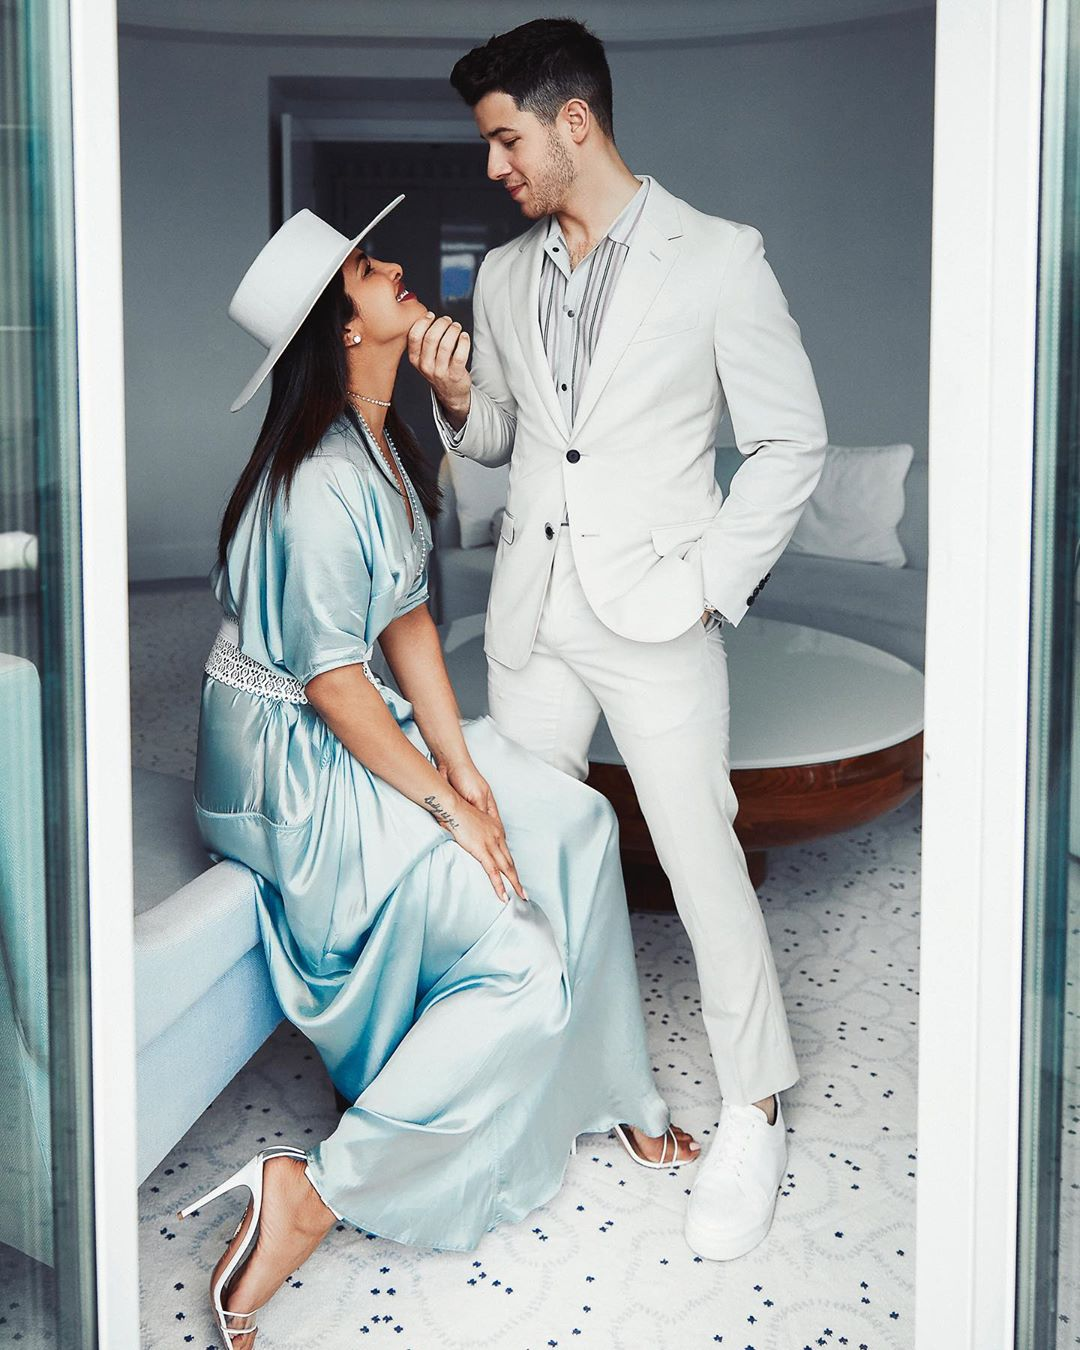 Priyanka Chopra And Nick Jonas Arrived As A Power Couple At Cannes 2019